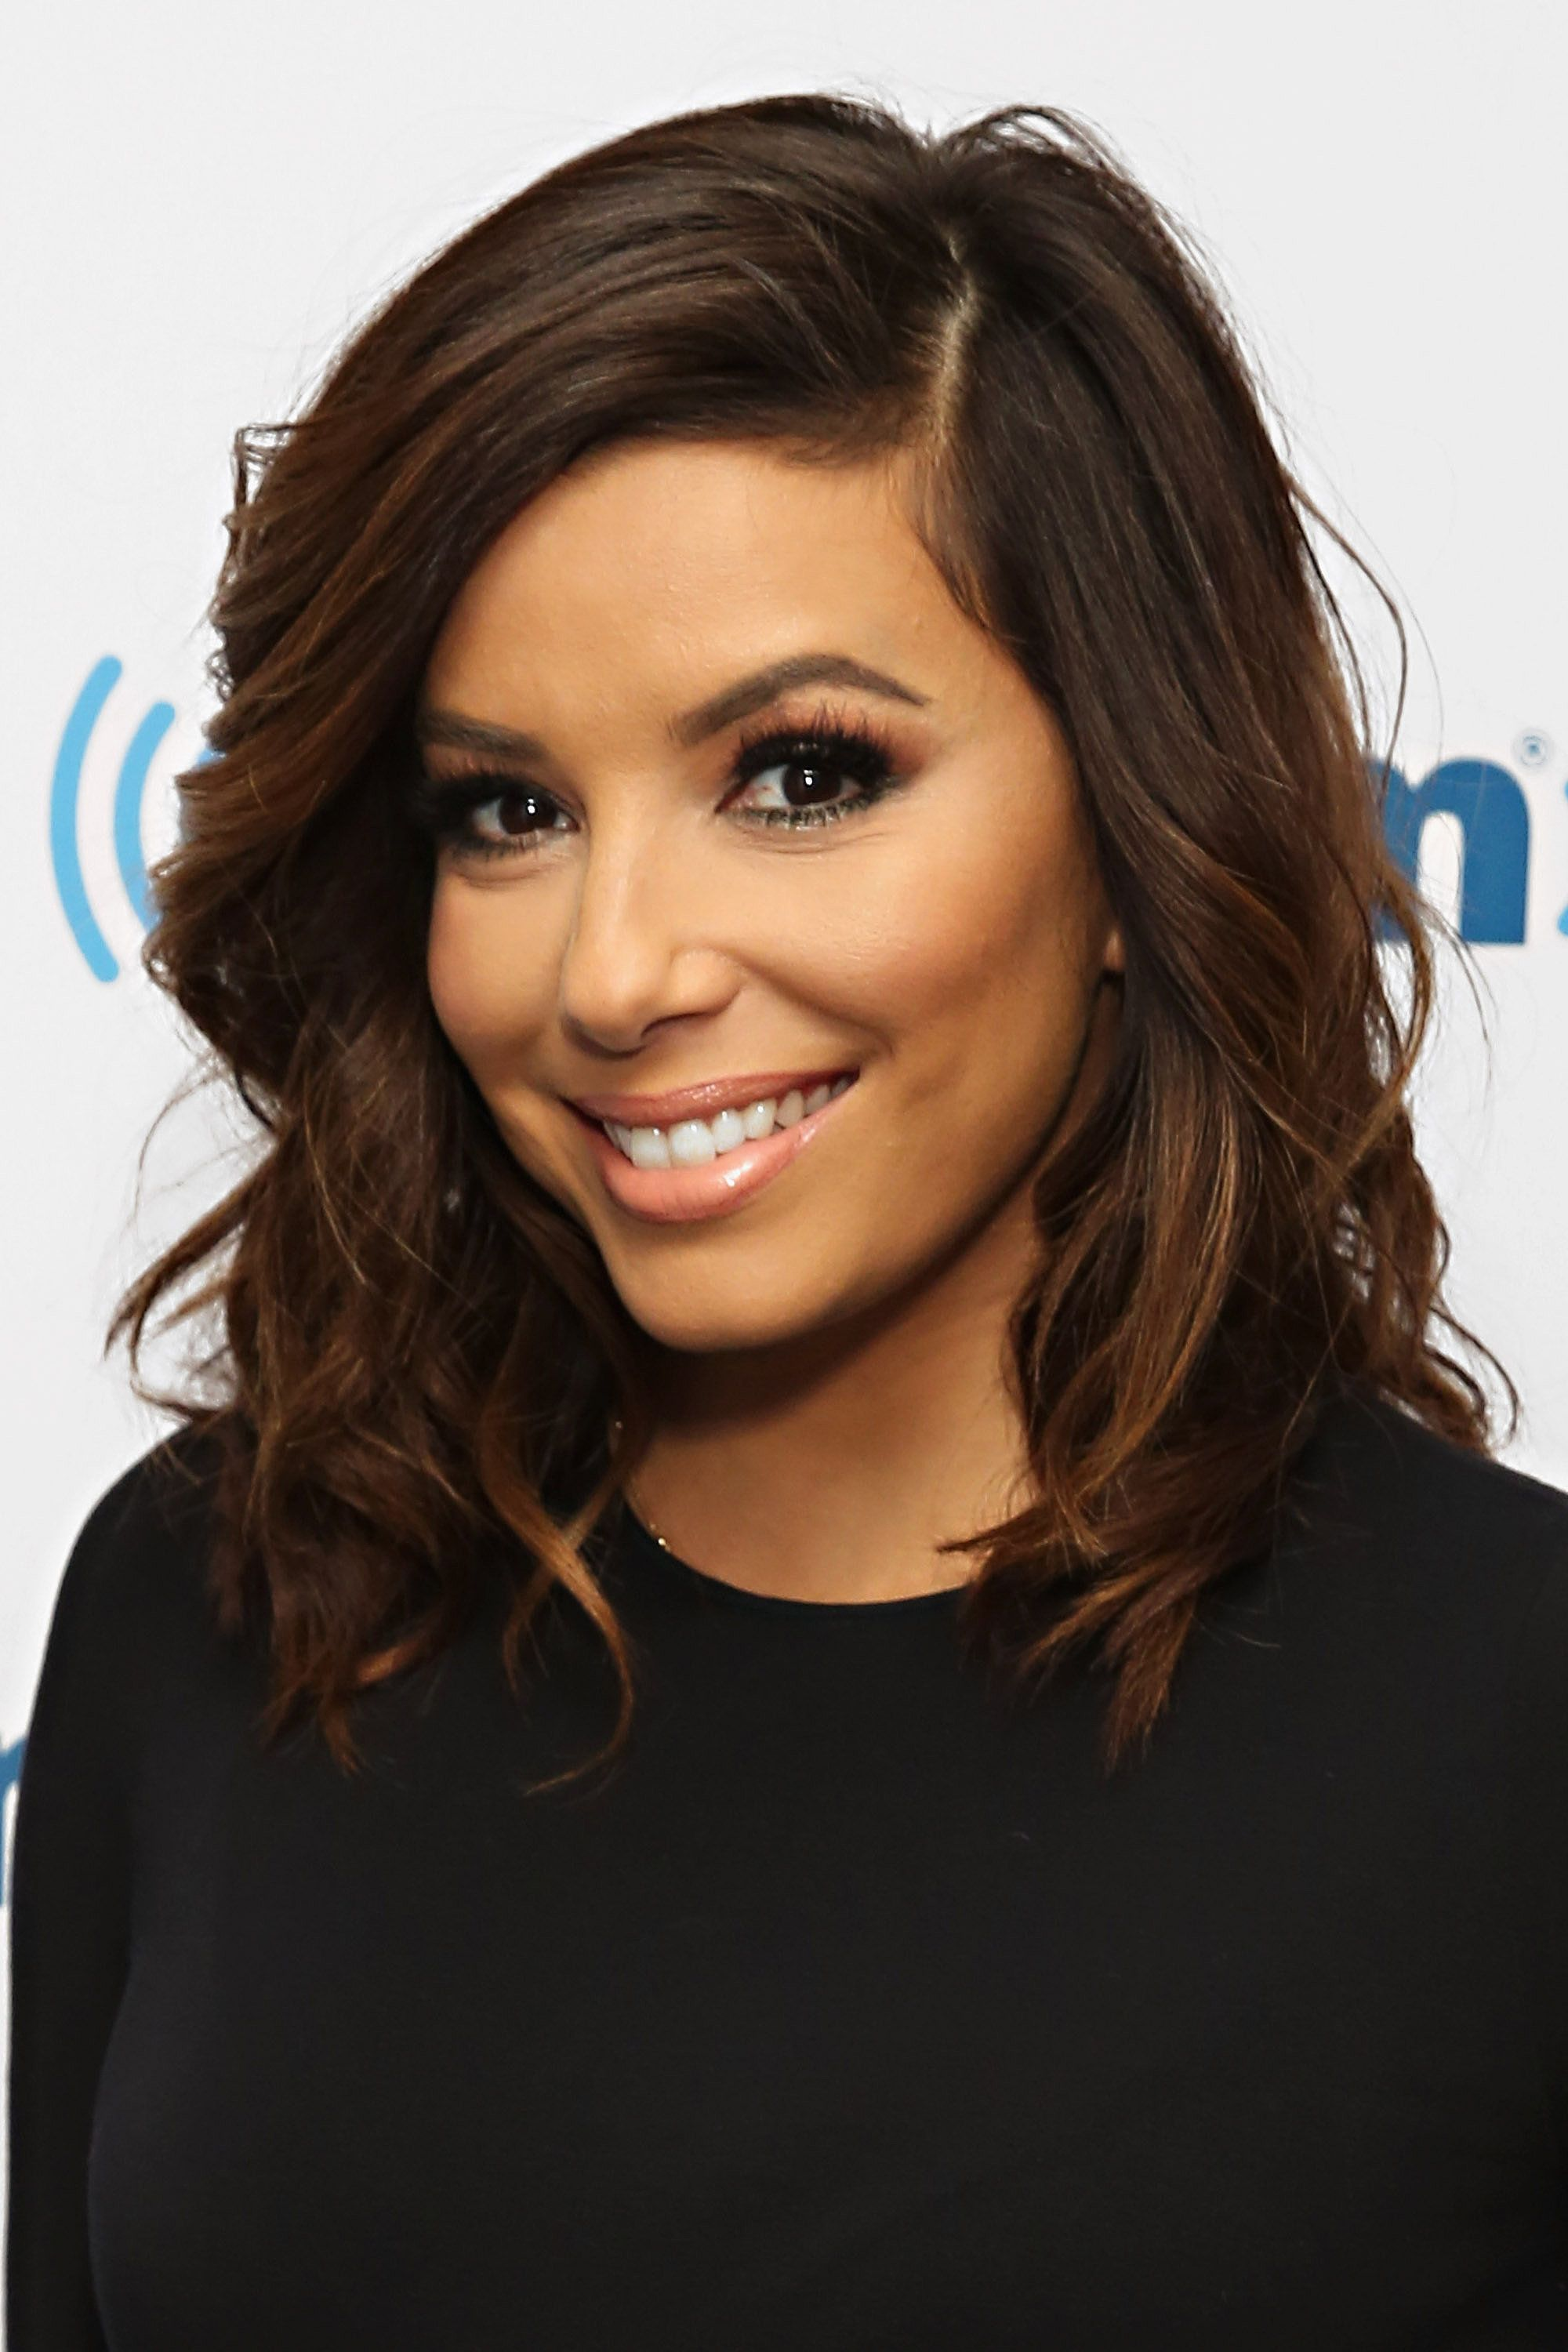 Eva Longoria: Midlength and Soft | Eva longoria, Hair ... Eva Longoria